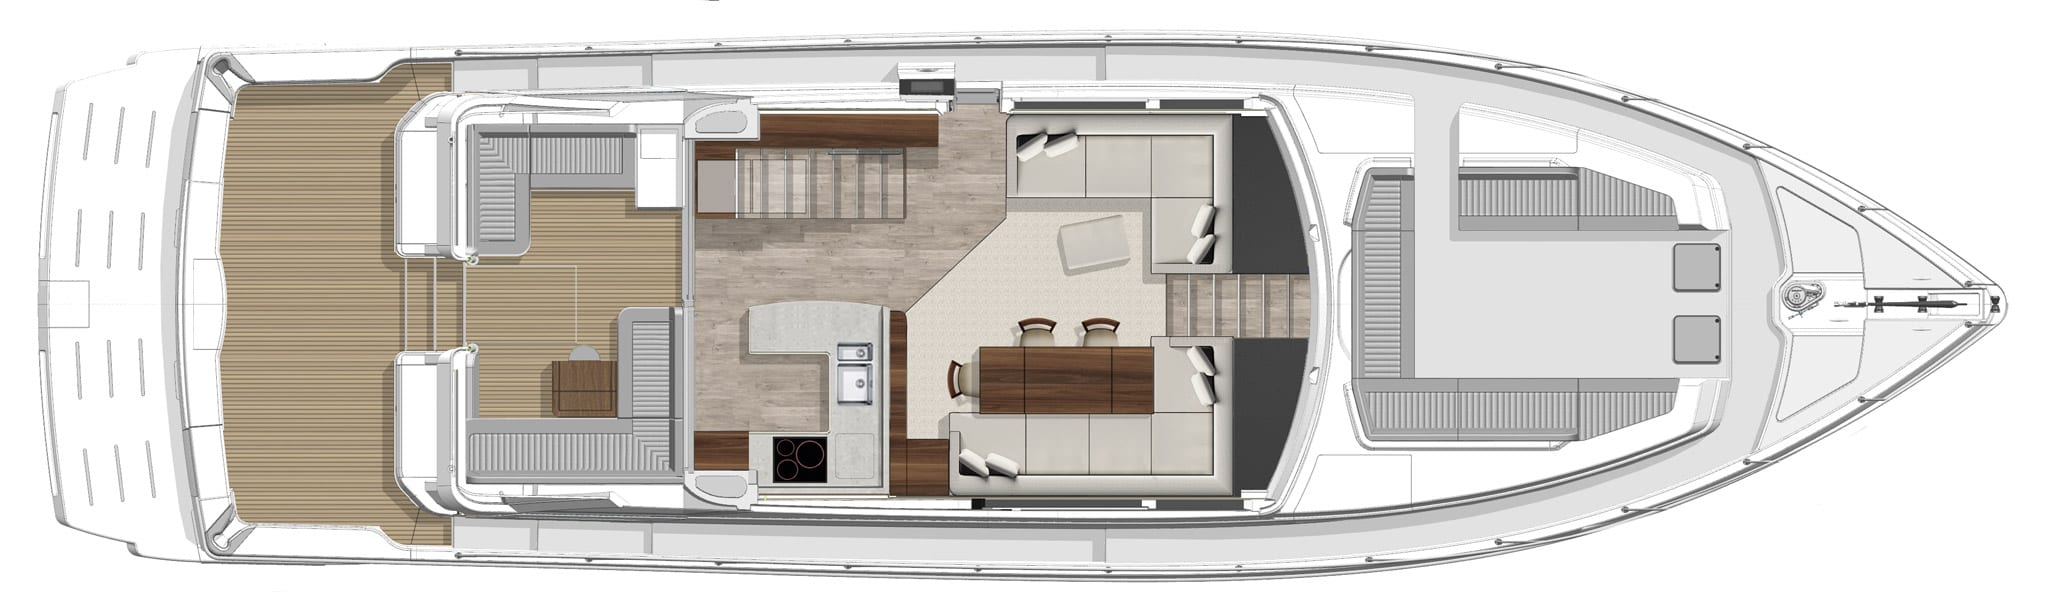 Riviera 64 Sports Motor Yacht layout - Main Salon Level